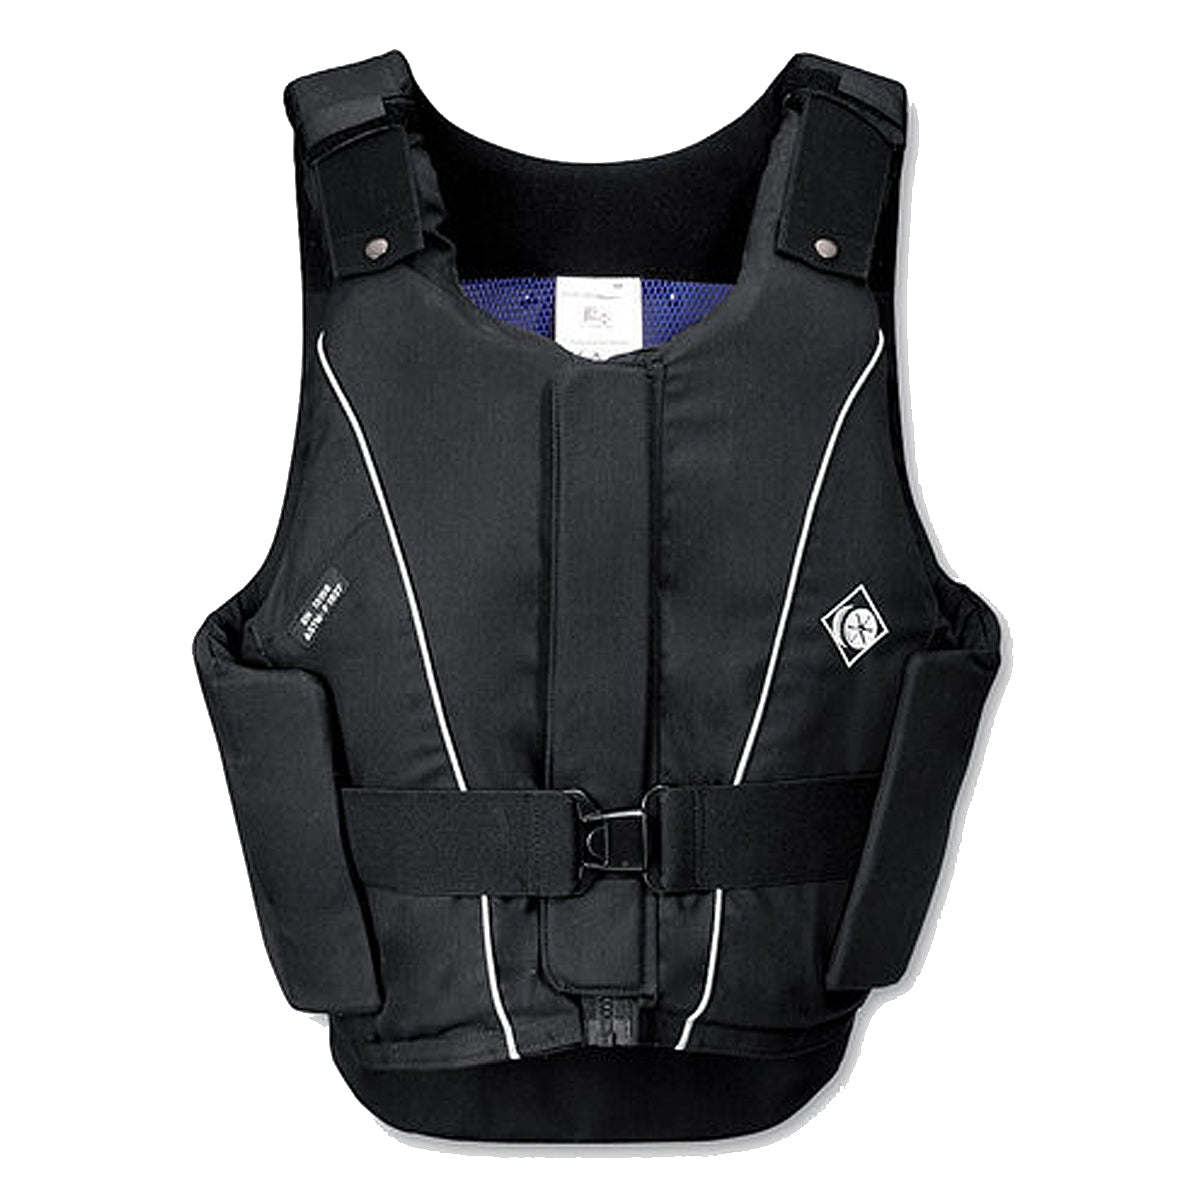 Charles Owen jL9 Body Protector- Child's